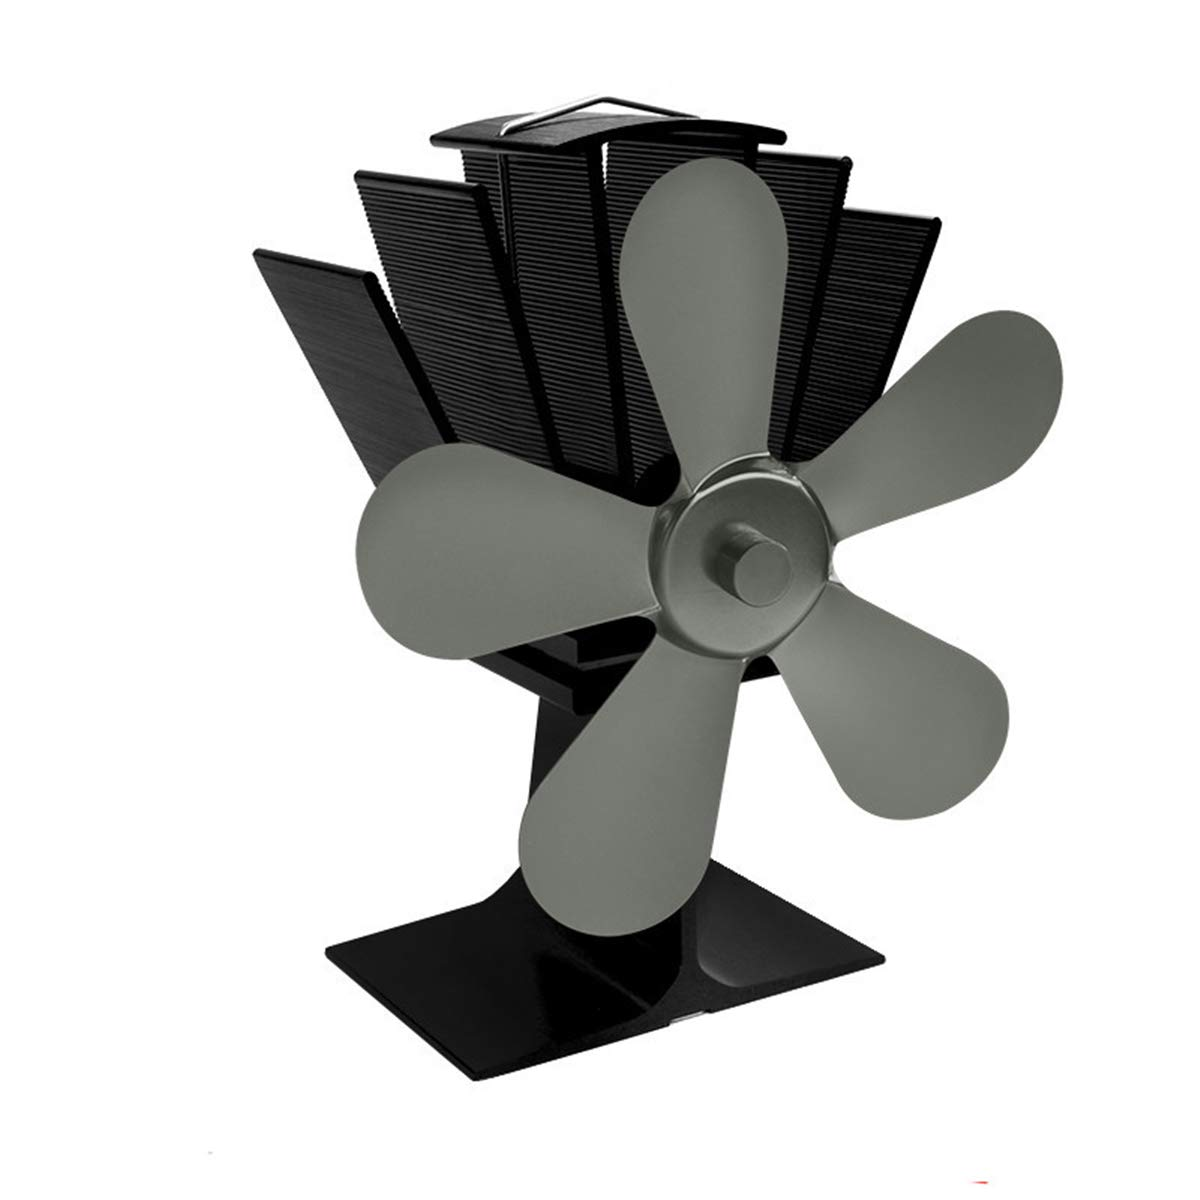 EVA DE EVA Large Stove Fan 5 Blade Fireplace Heat Powered Komin Wood Burner Eco, Wood Fireplace Fan - Wood Heat Stove, Eco Fan Blade, Fireplace Heater Fan, Wood Stove Fans by EVA DE EVA